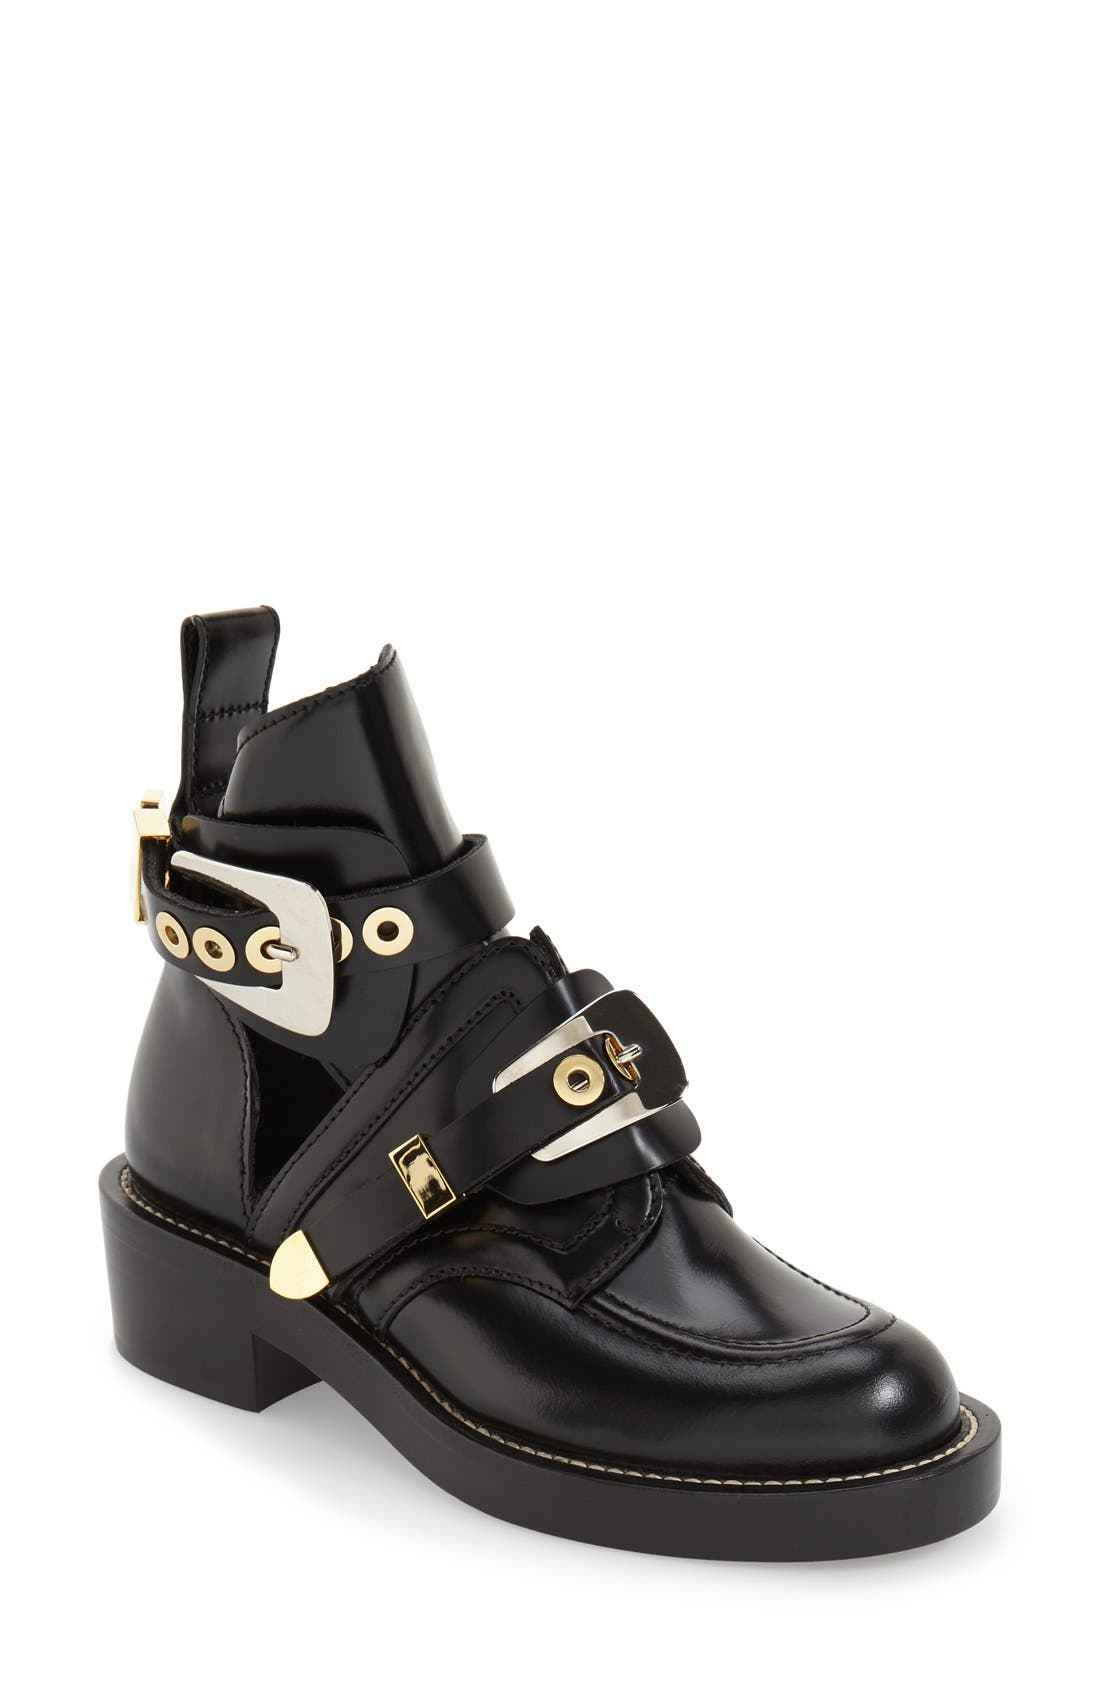 Main Image - Balenciaga Cutout Buckle Boot (Women)